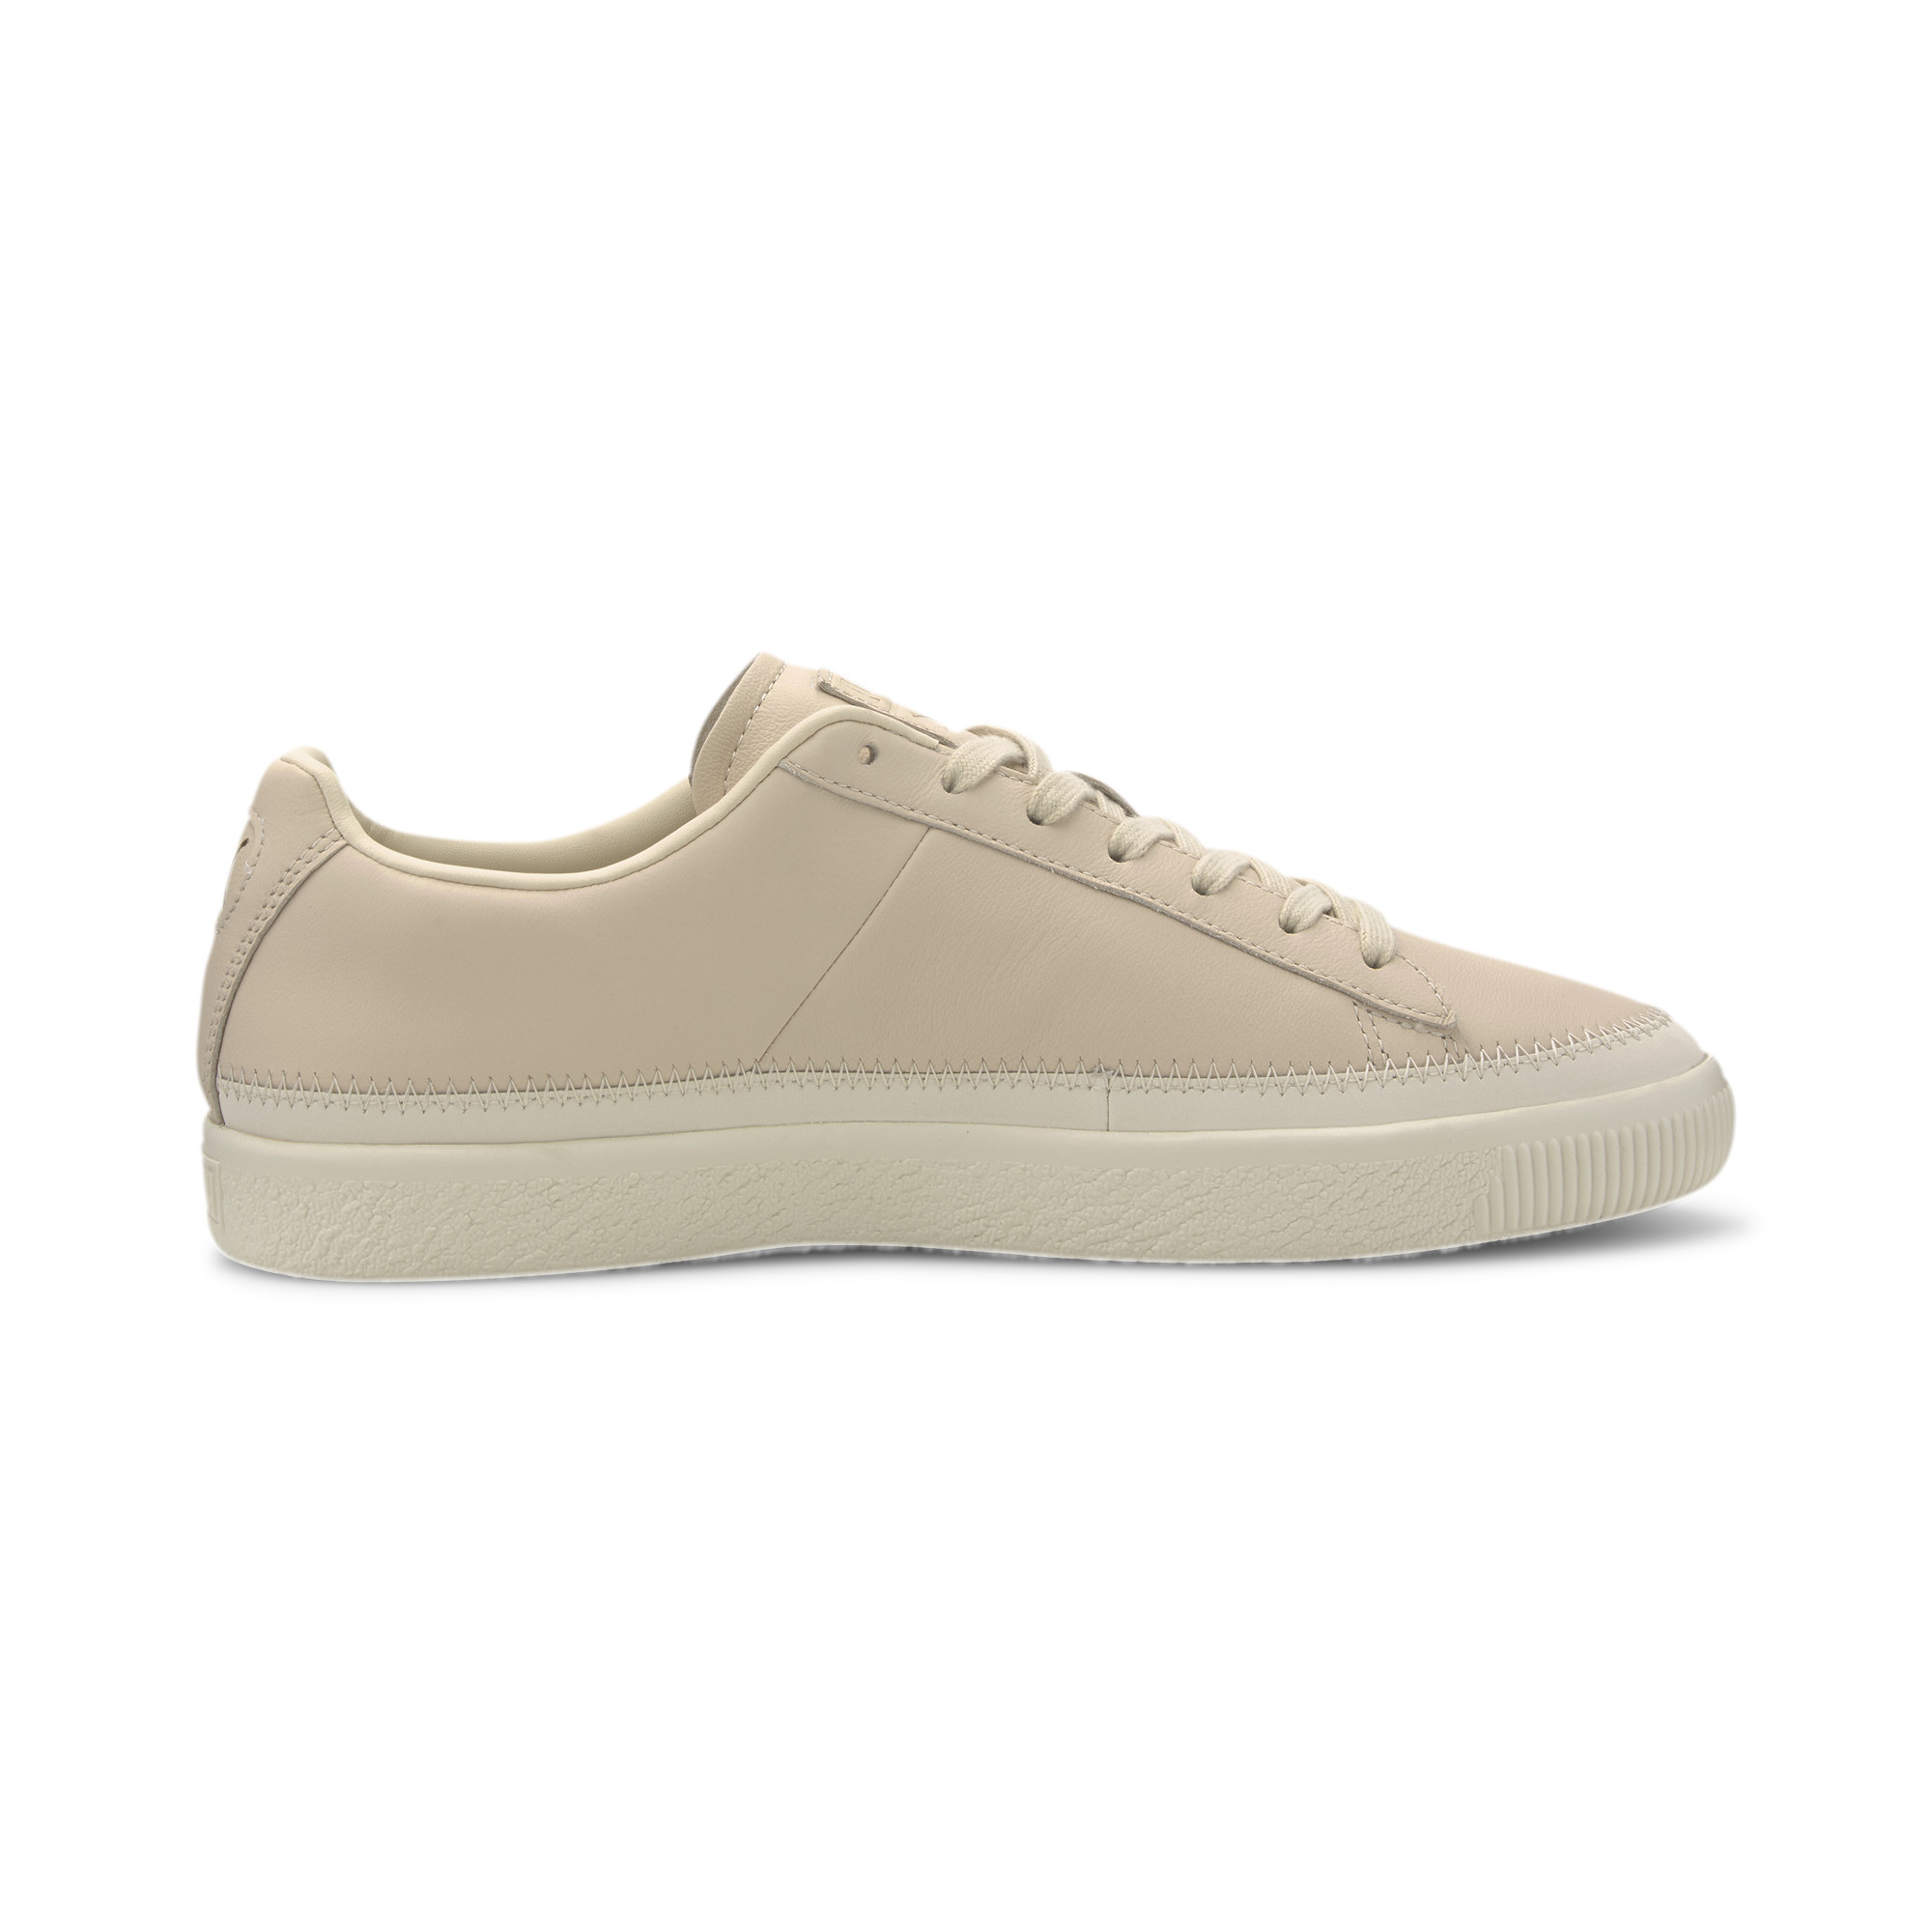 PUMA-Men-039-s-Basket-Trim-PRM-Sneakers thumbnail 14